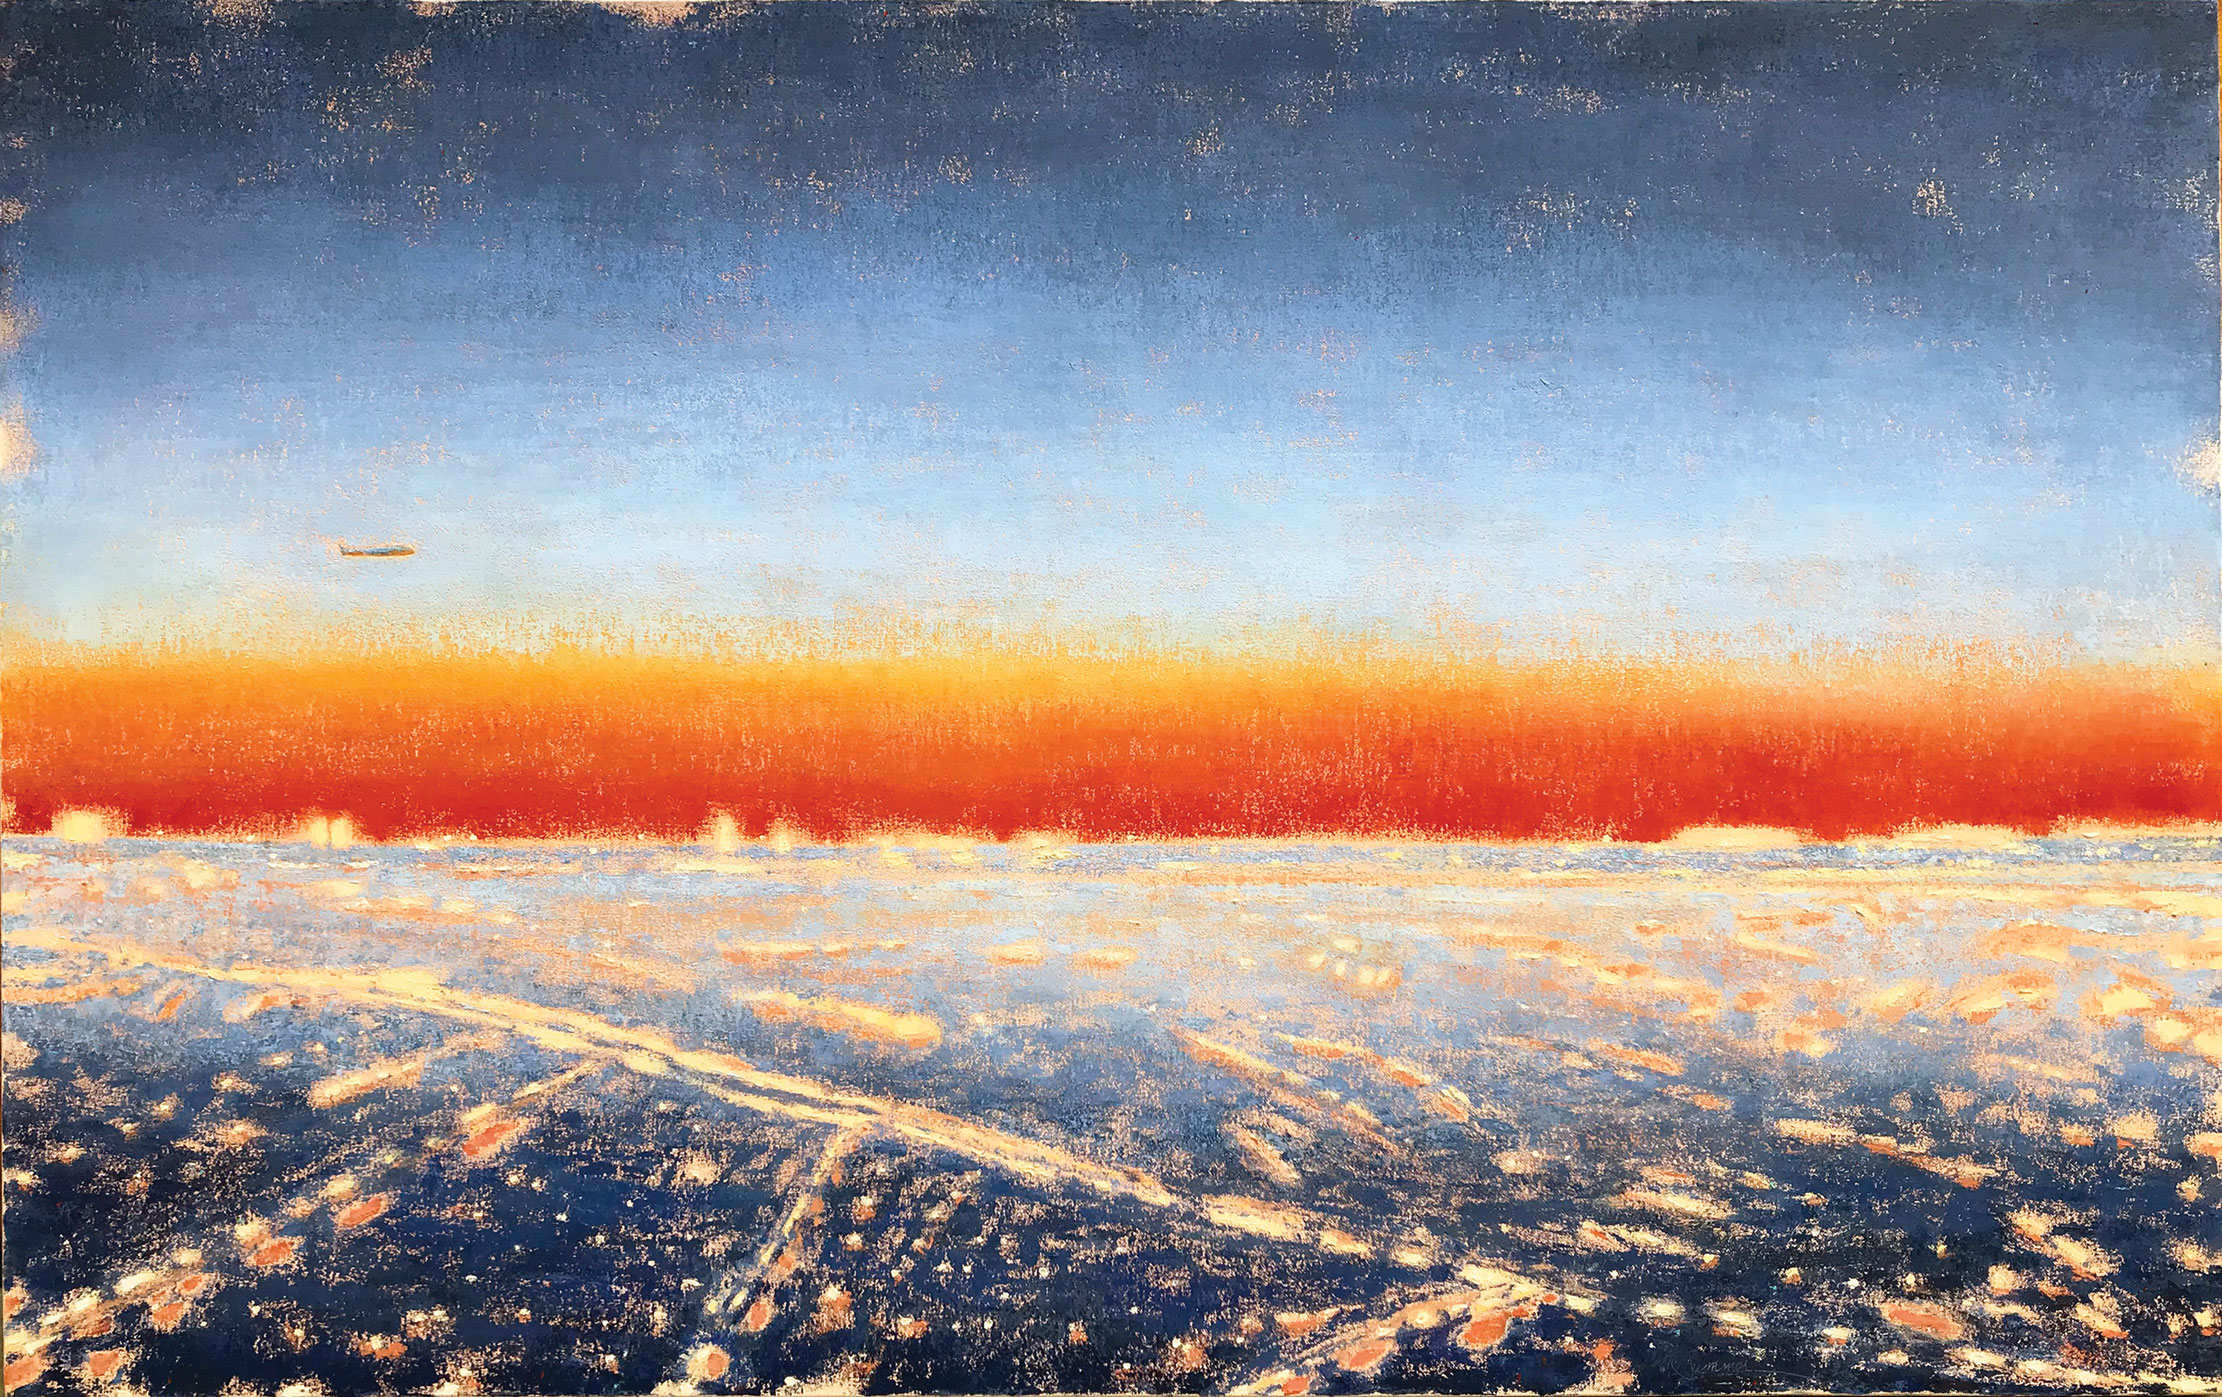 ©Gay-Summer-Rick_Window-Seat-to-JFK_Oil-on-canvas_30x48in_np_web